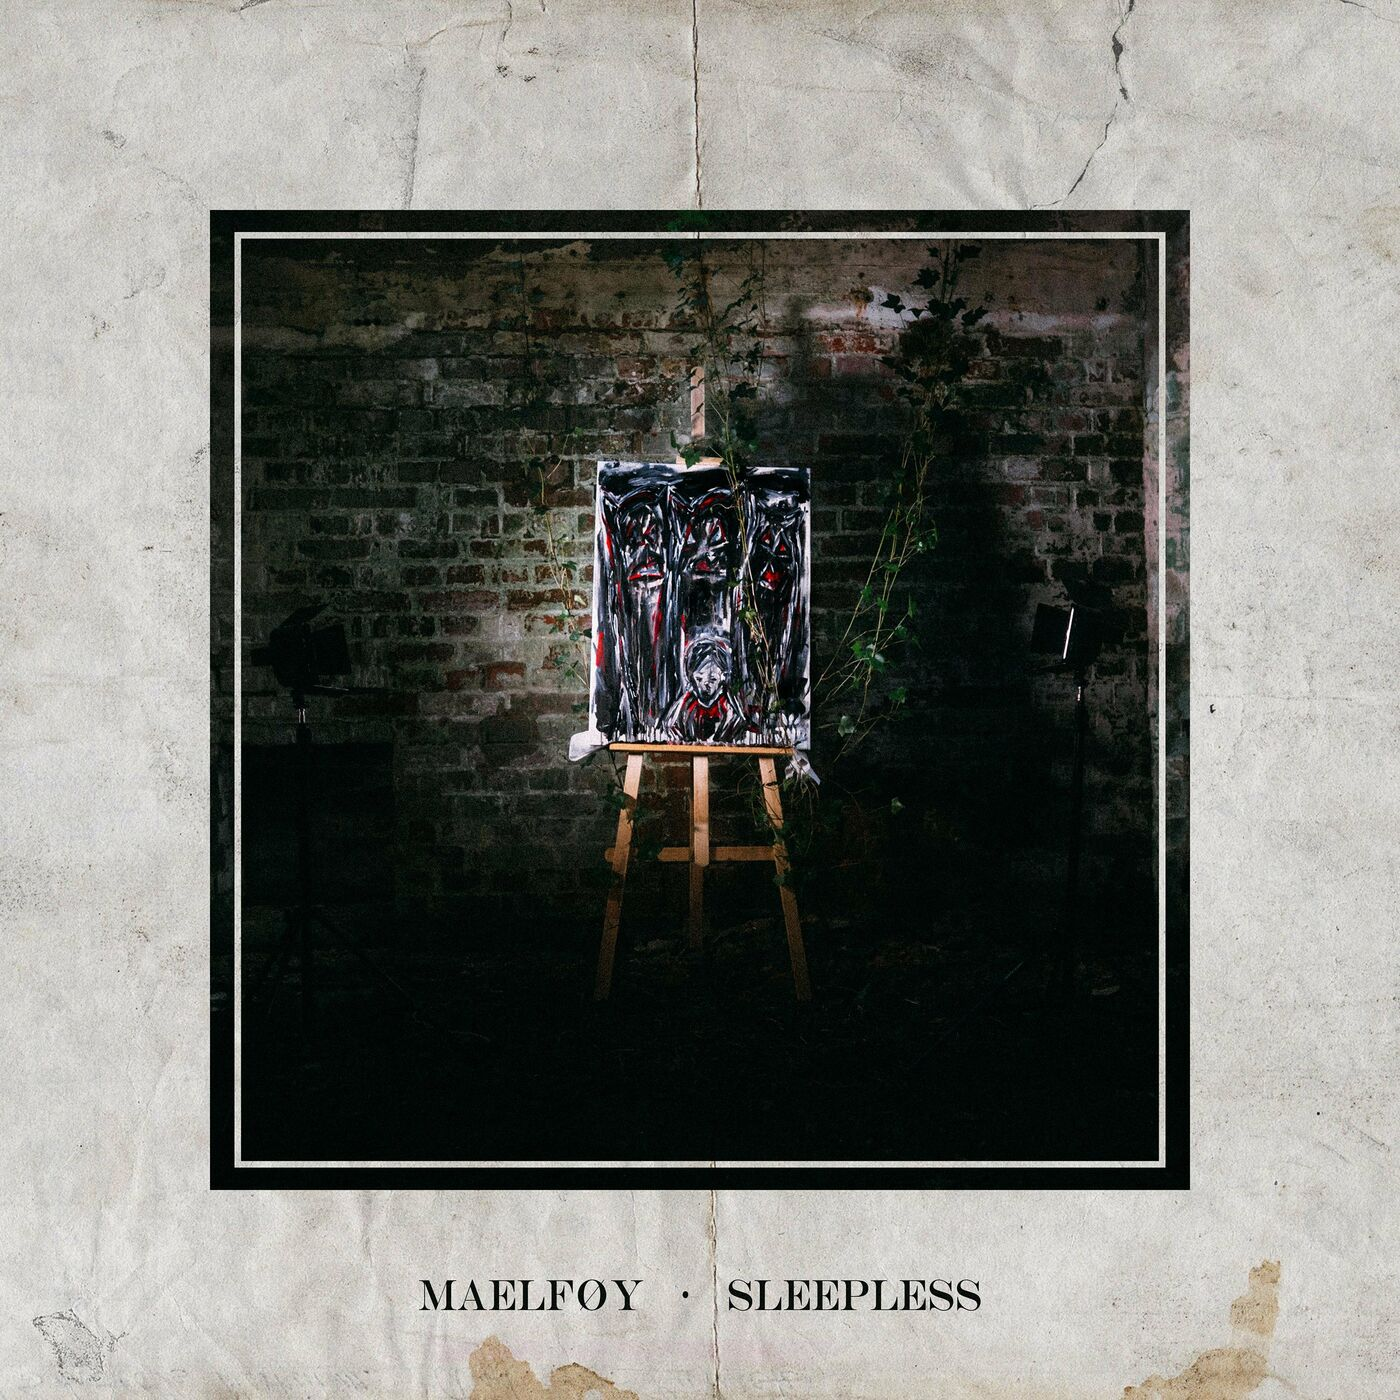 Maelføy - Sleepless [single] (2020)